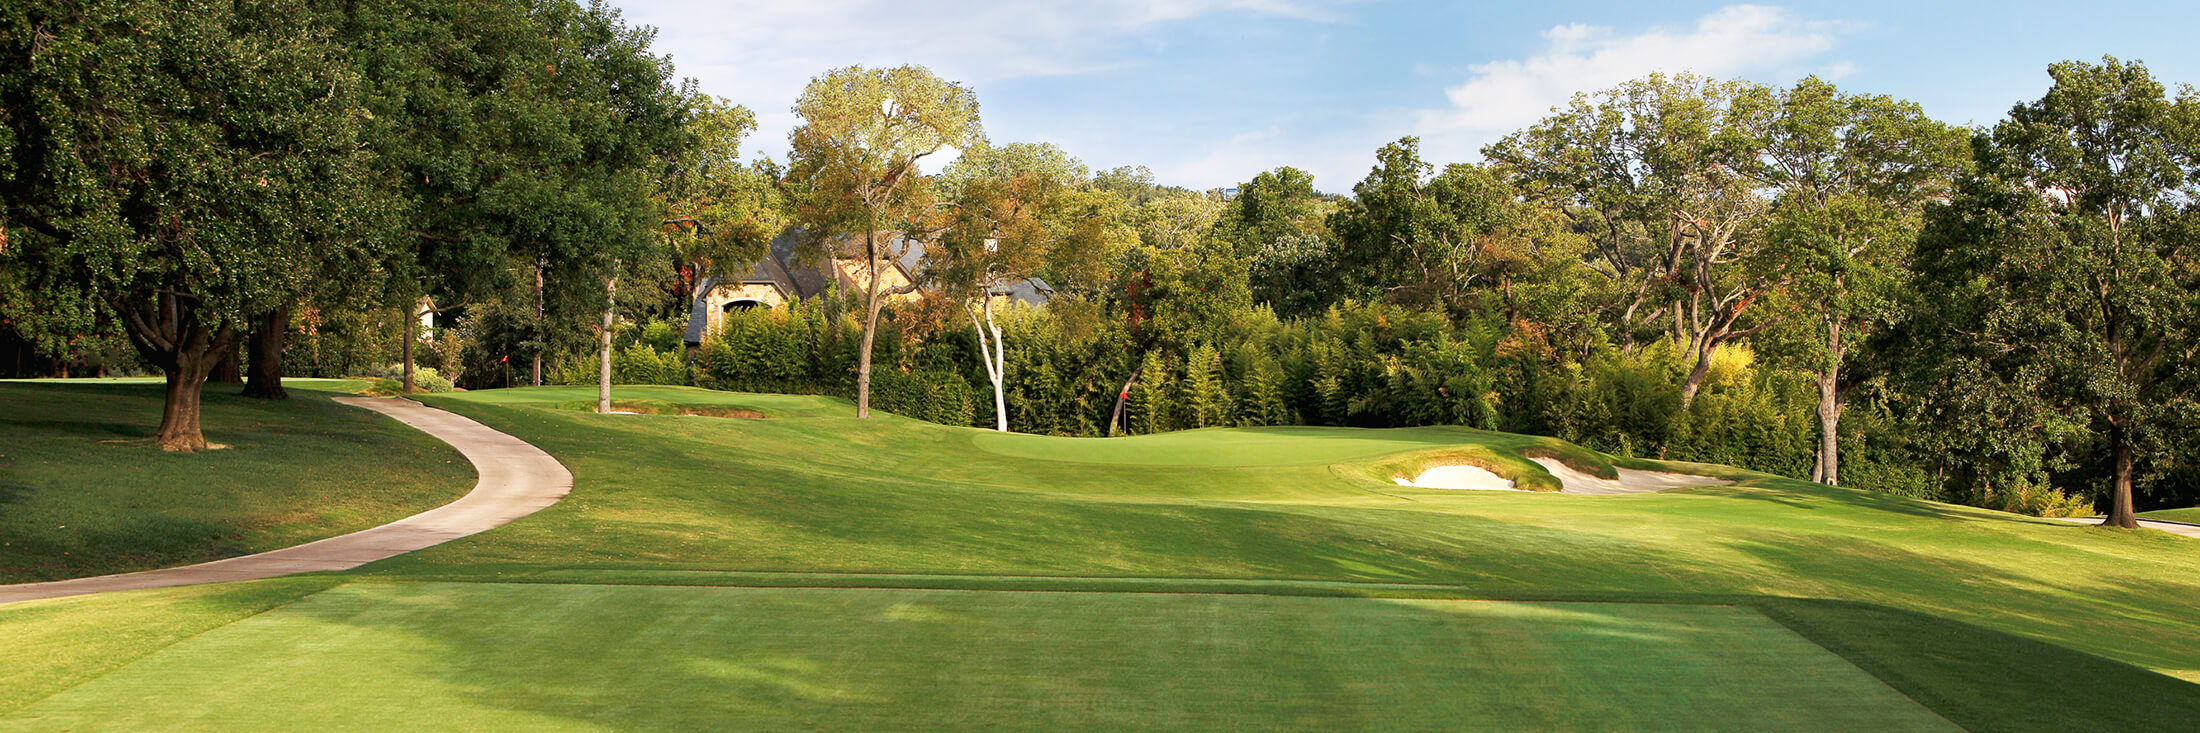 Golf Course Image - Northwood Club No. 5